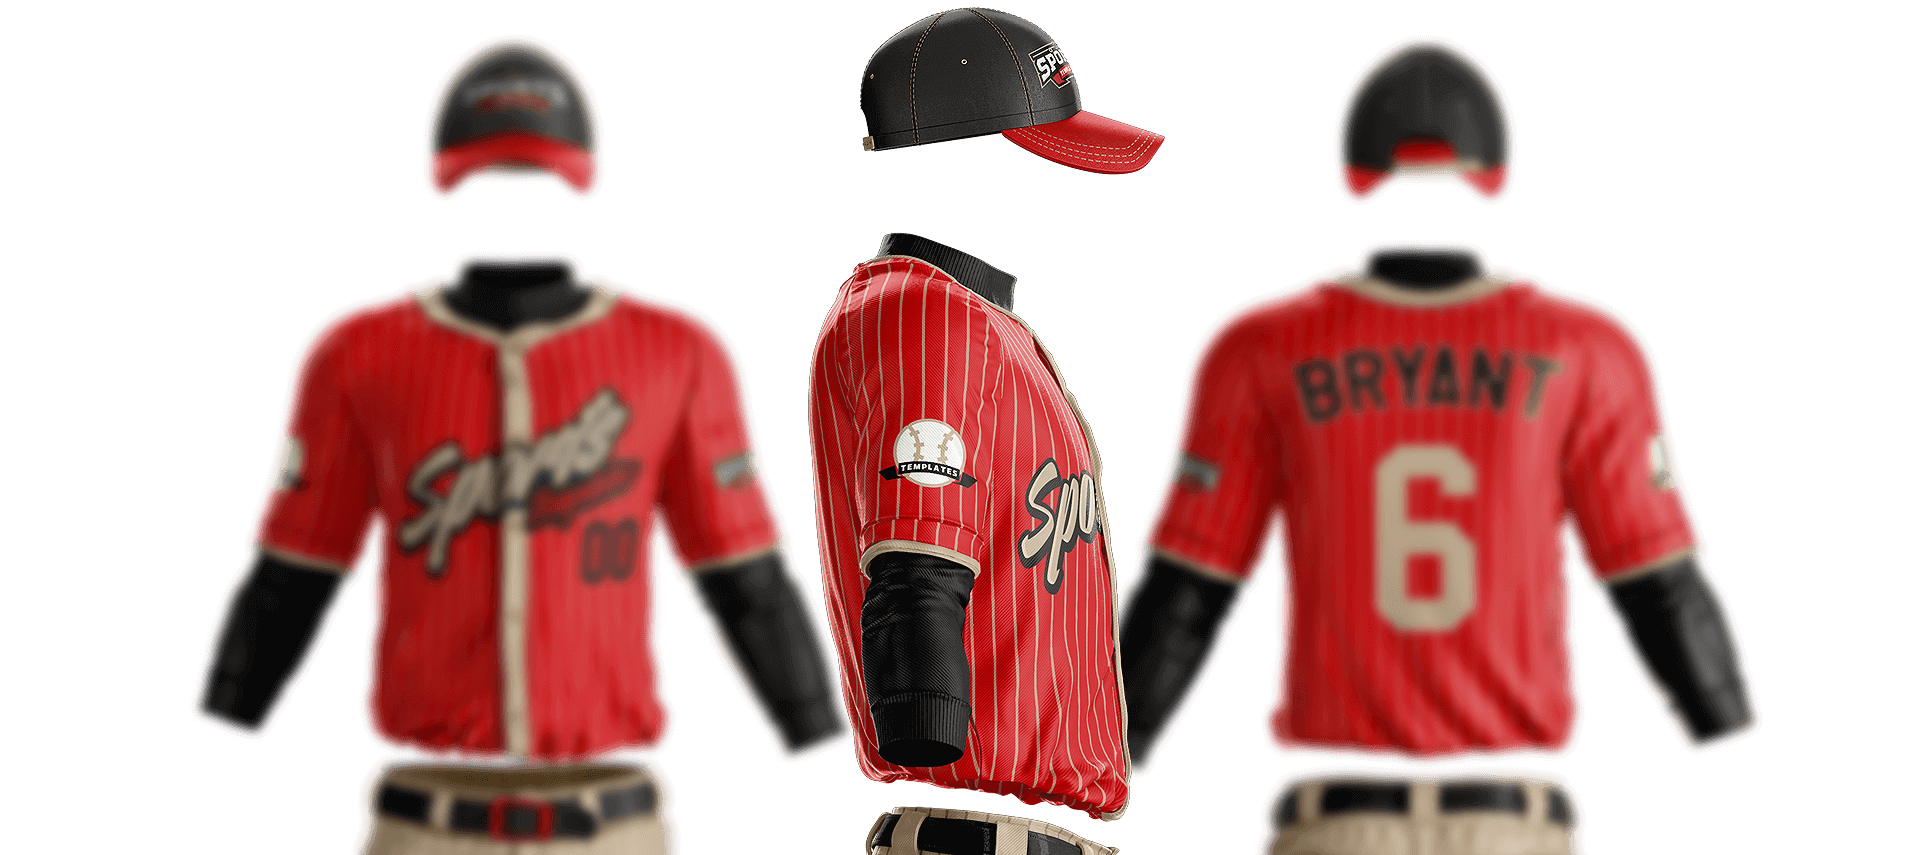 softball uniform design templates - design your own baseball uniform black lesbiens fucking